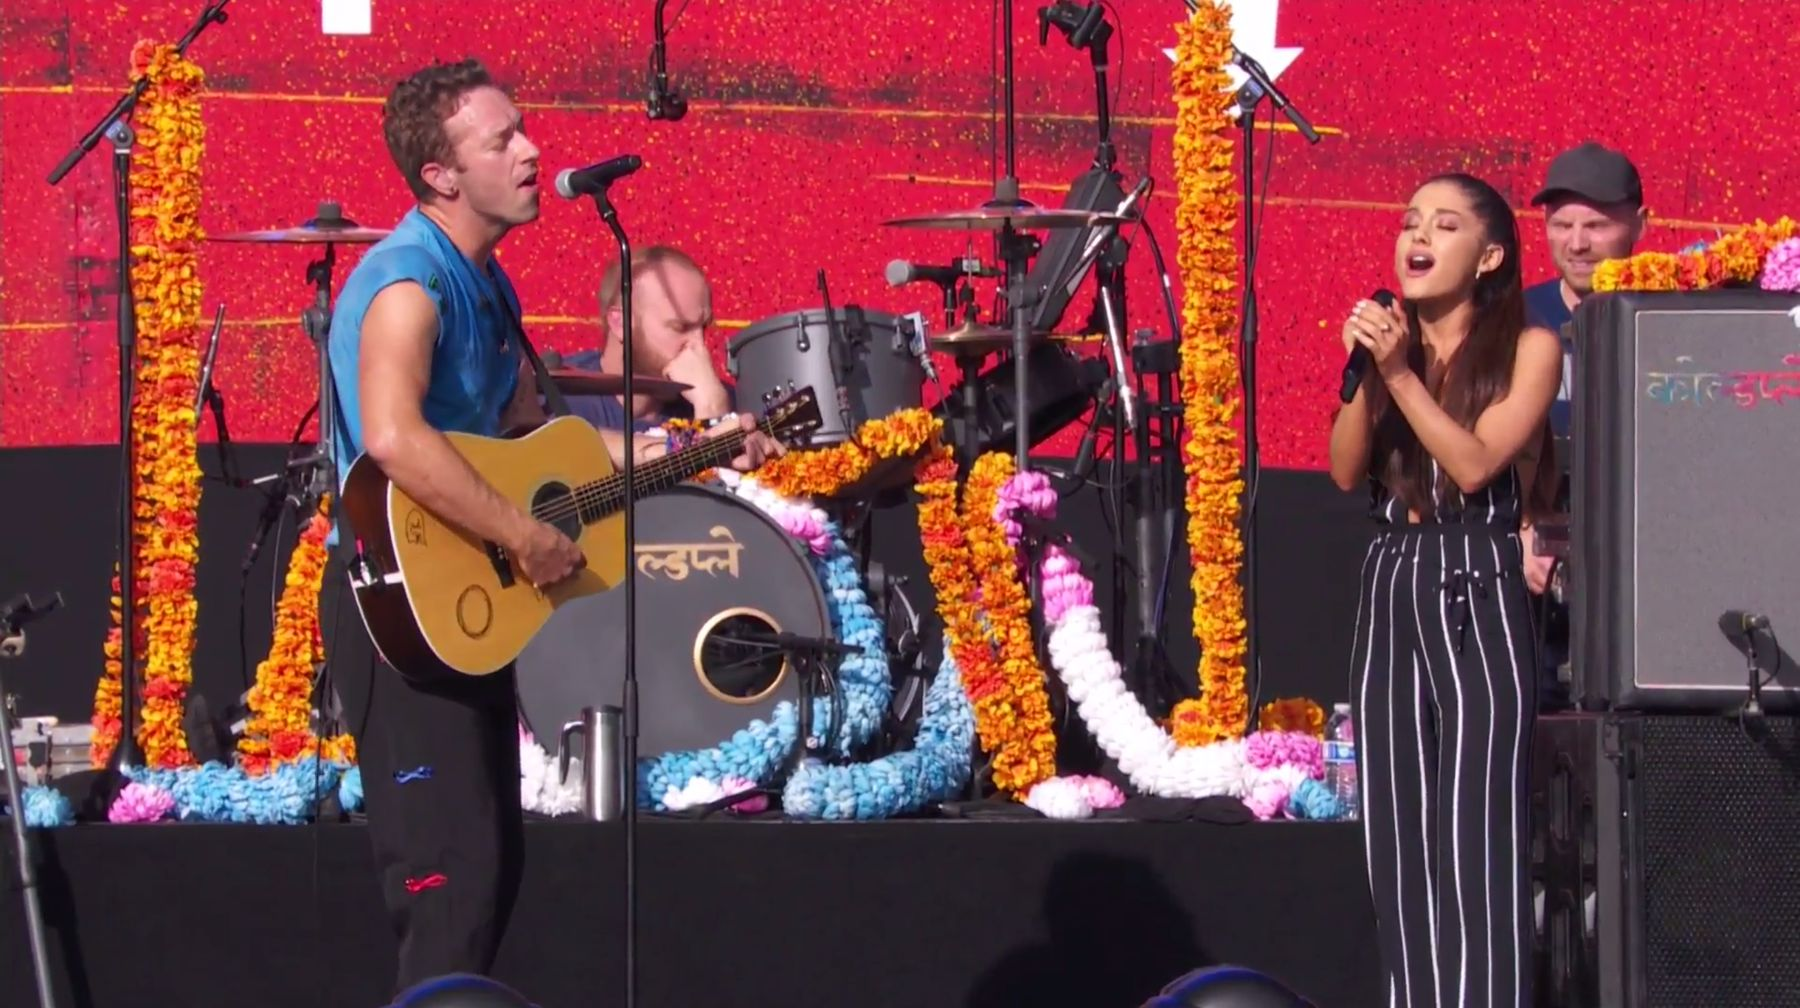 livestream global citizen festival stereogum watch coldplay debut new song amazing day perform ariana grande at global